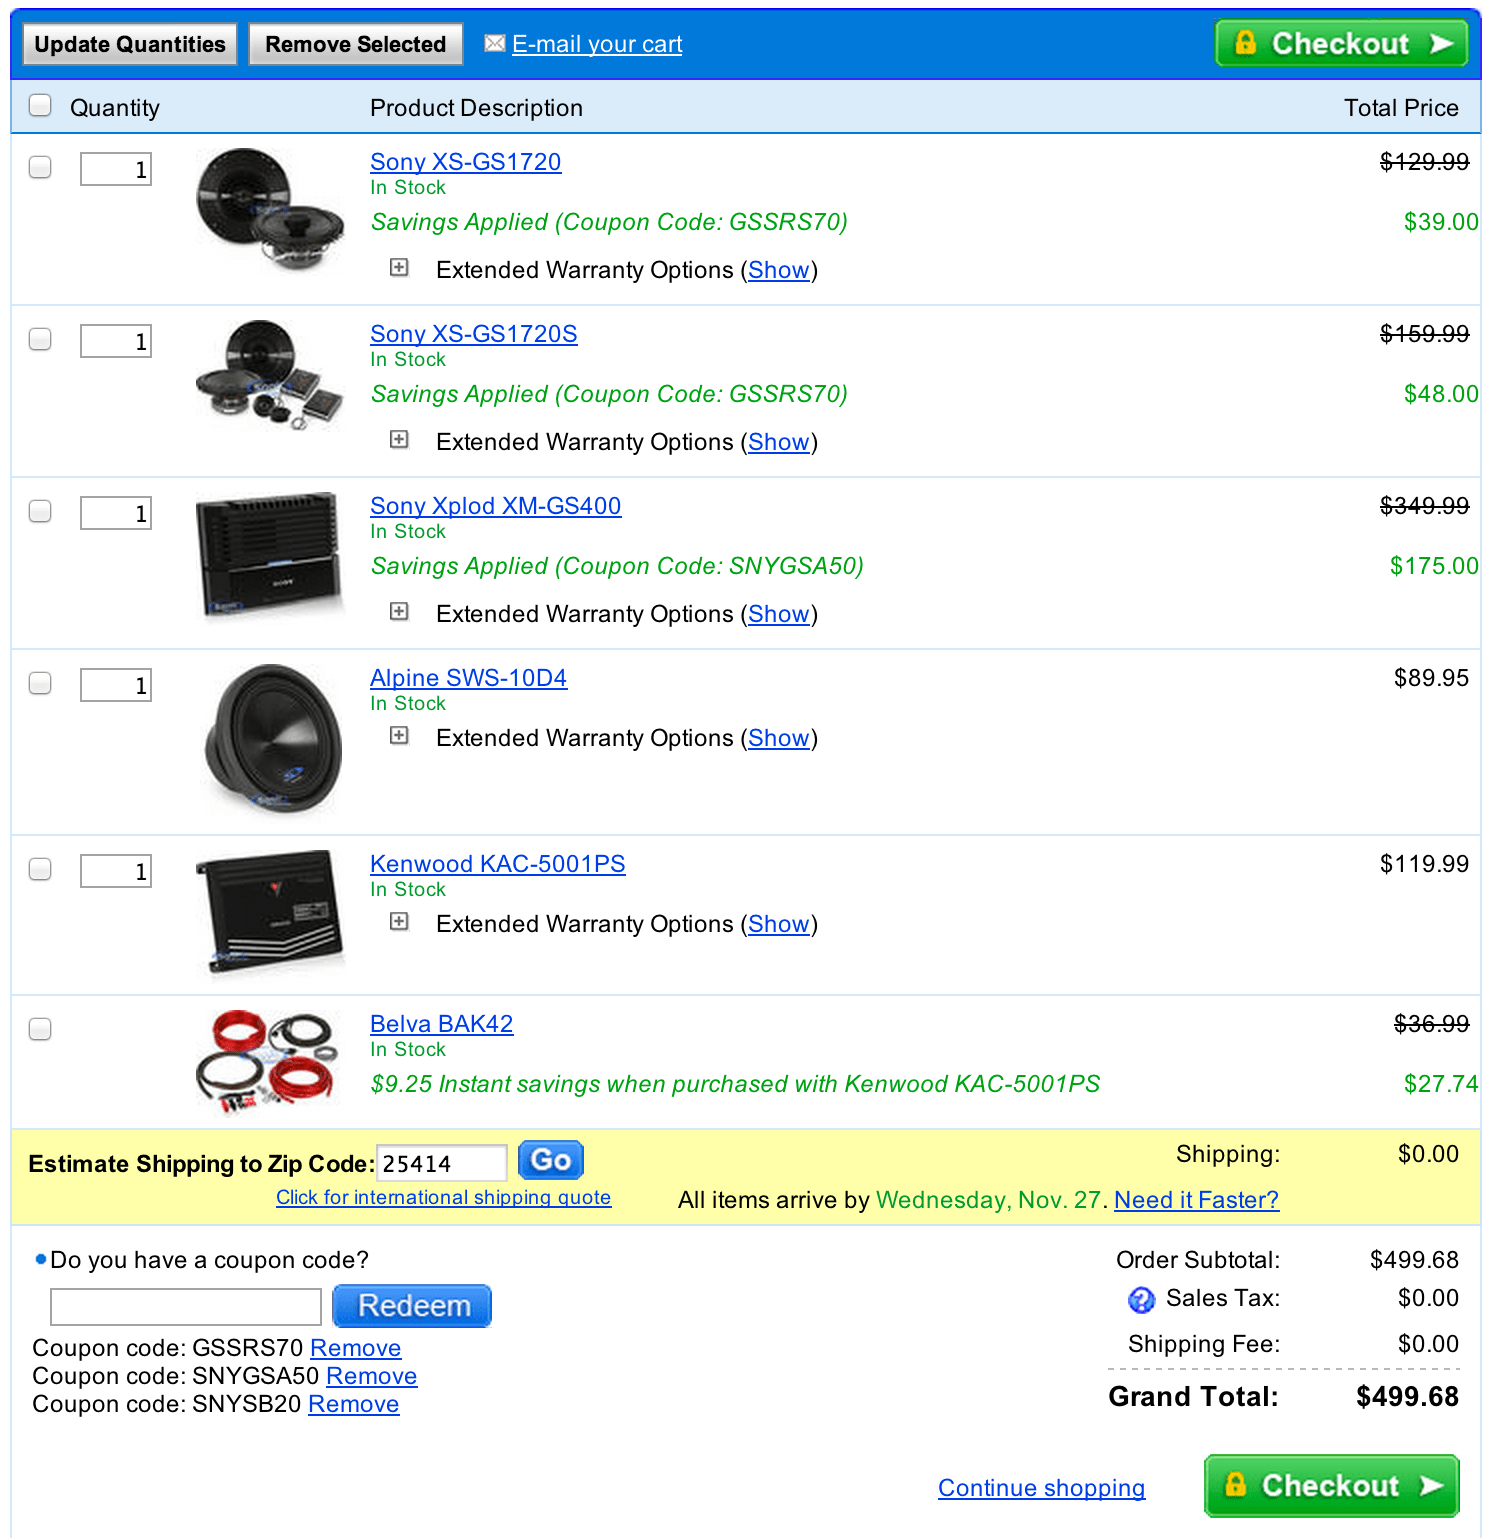 358488d1385340191 just ordered a kenwood ddx470 screenshot 2013 11 24 16.57.09?resize\\\\\\\\\\\\\\\\\\\\\\\\\\\\\\\=665%2C687 kenwood dnx6140 wiring diagram wiring diagrams kenwood dnx6140 wiring harness at edmiracle.co